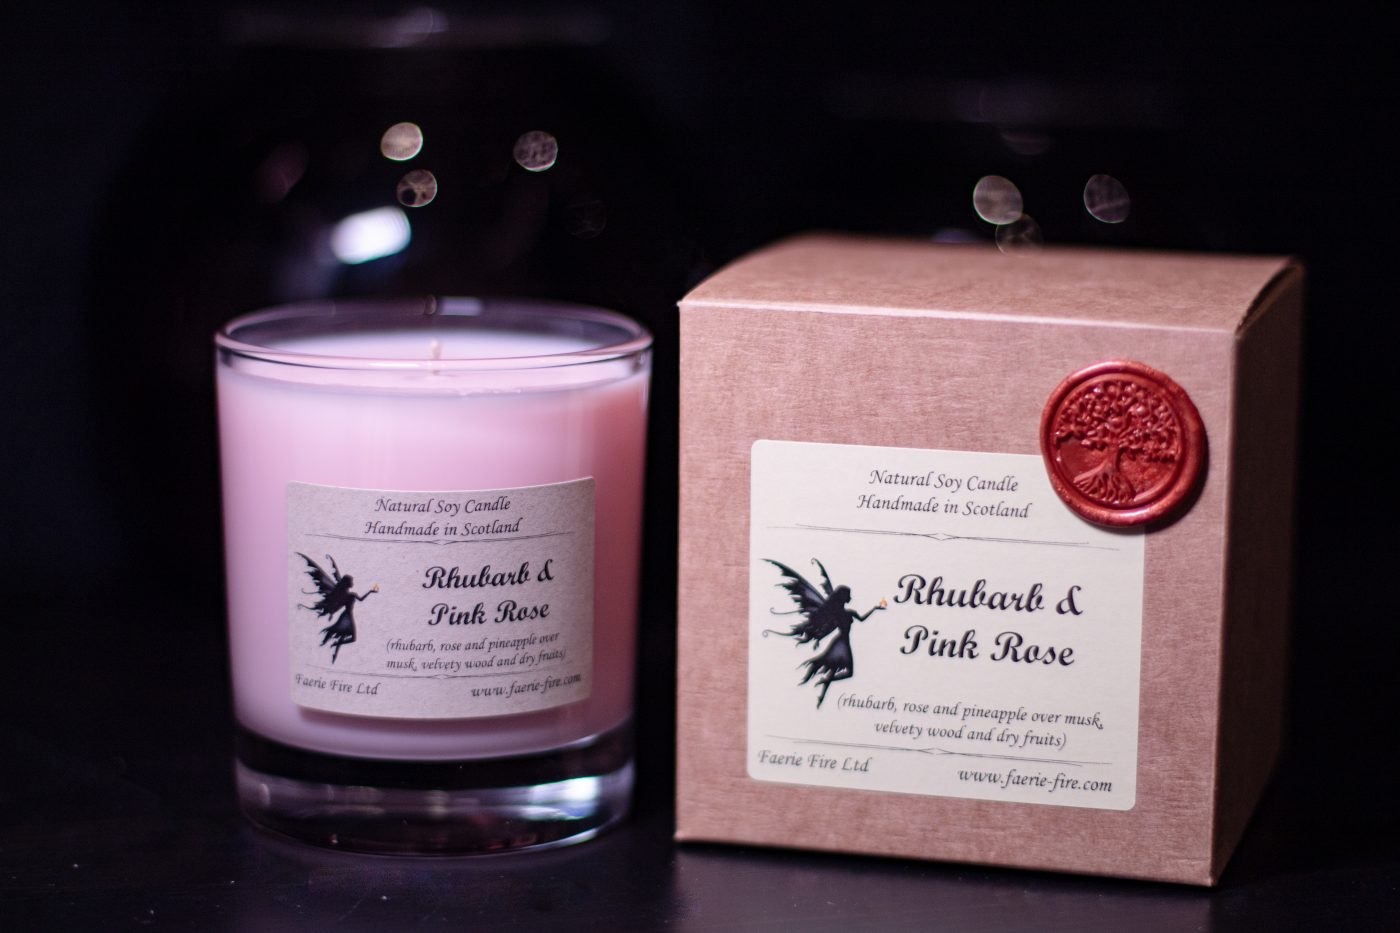 Rhubarb and rose fragranced pink candle in a clear glass jar beside a gift box against a dark background